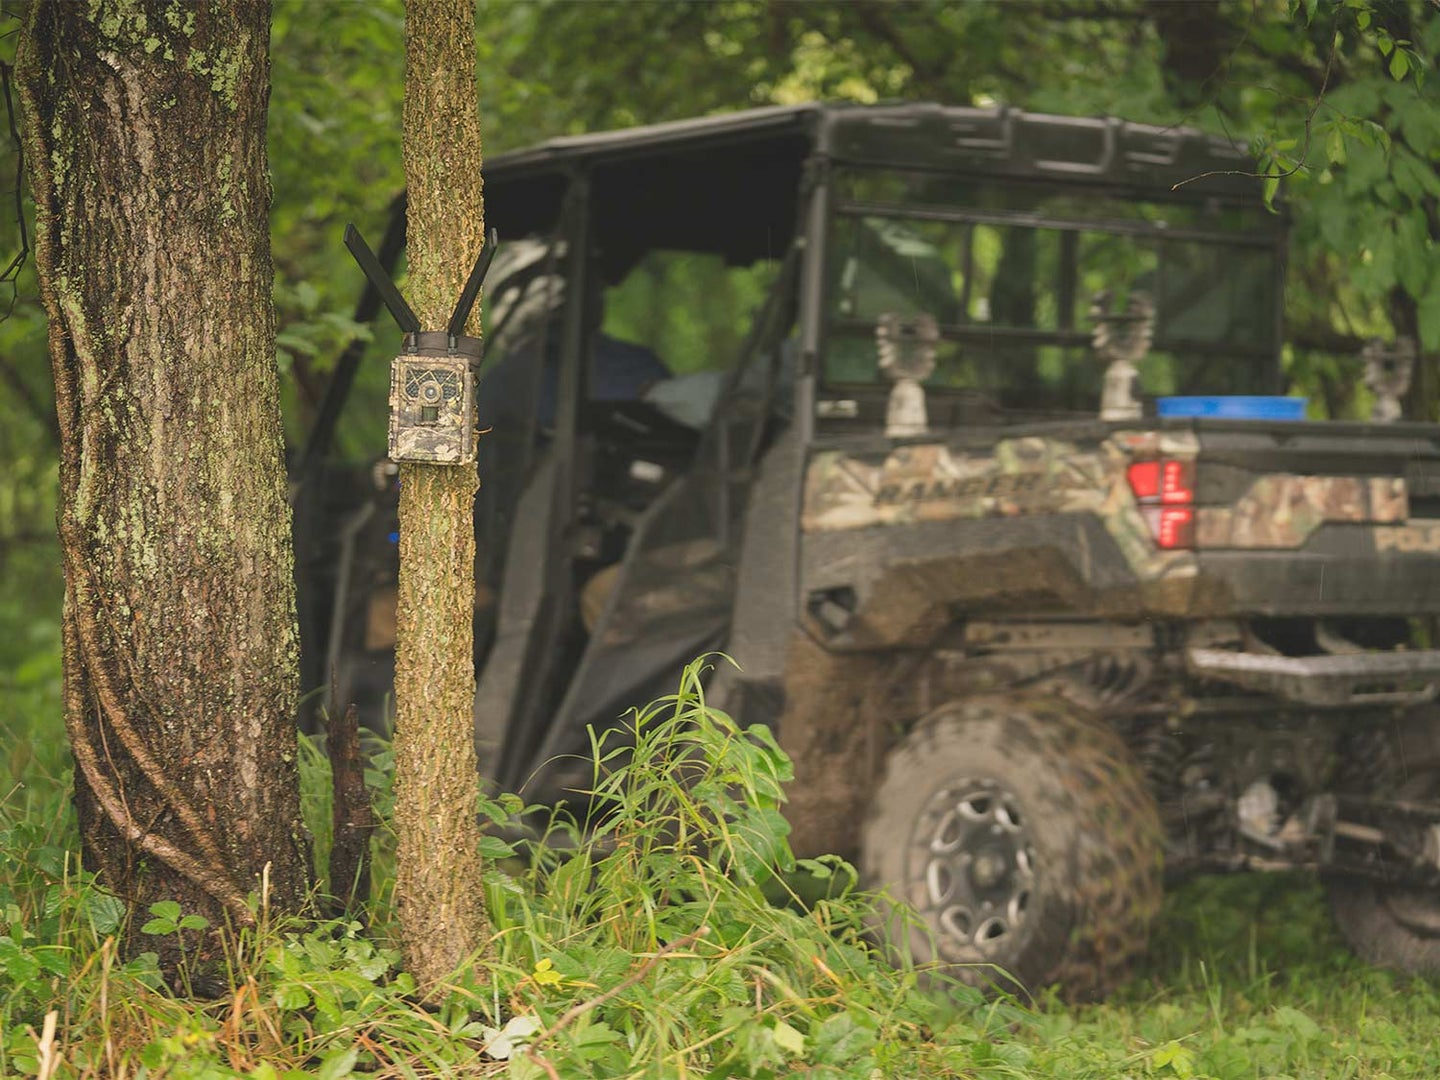 5 Tips for Getting Better Trail Camera Pictures